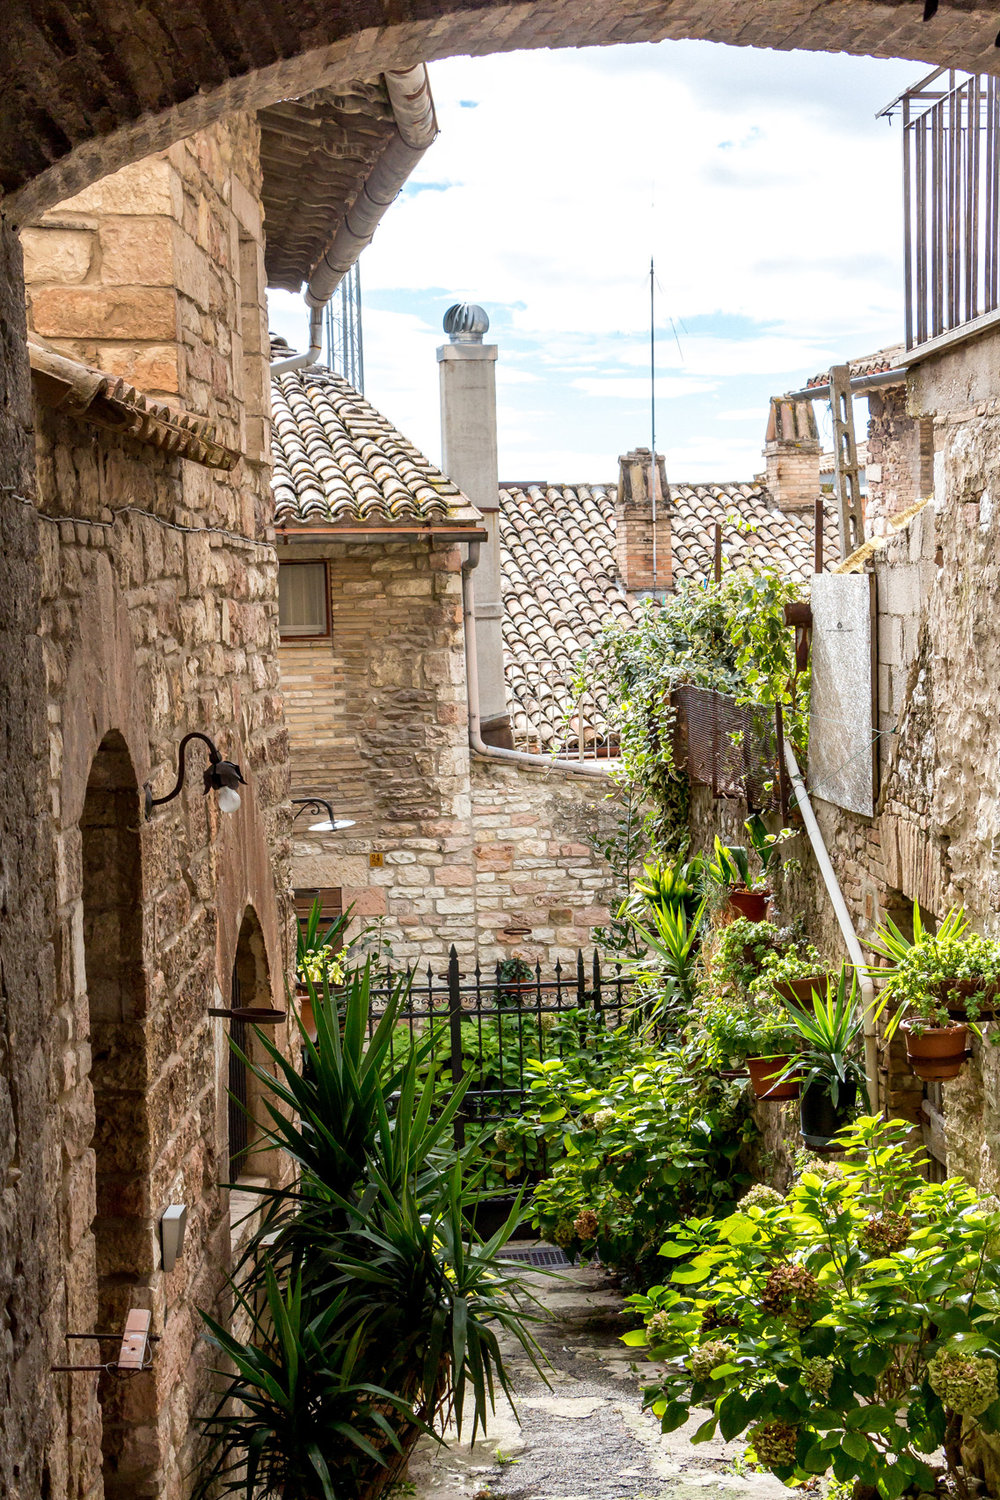 Courtyard in Assisi, Umbria